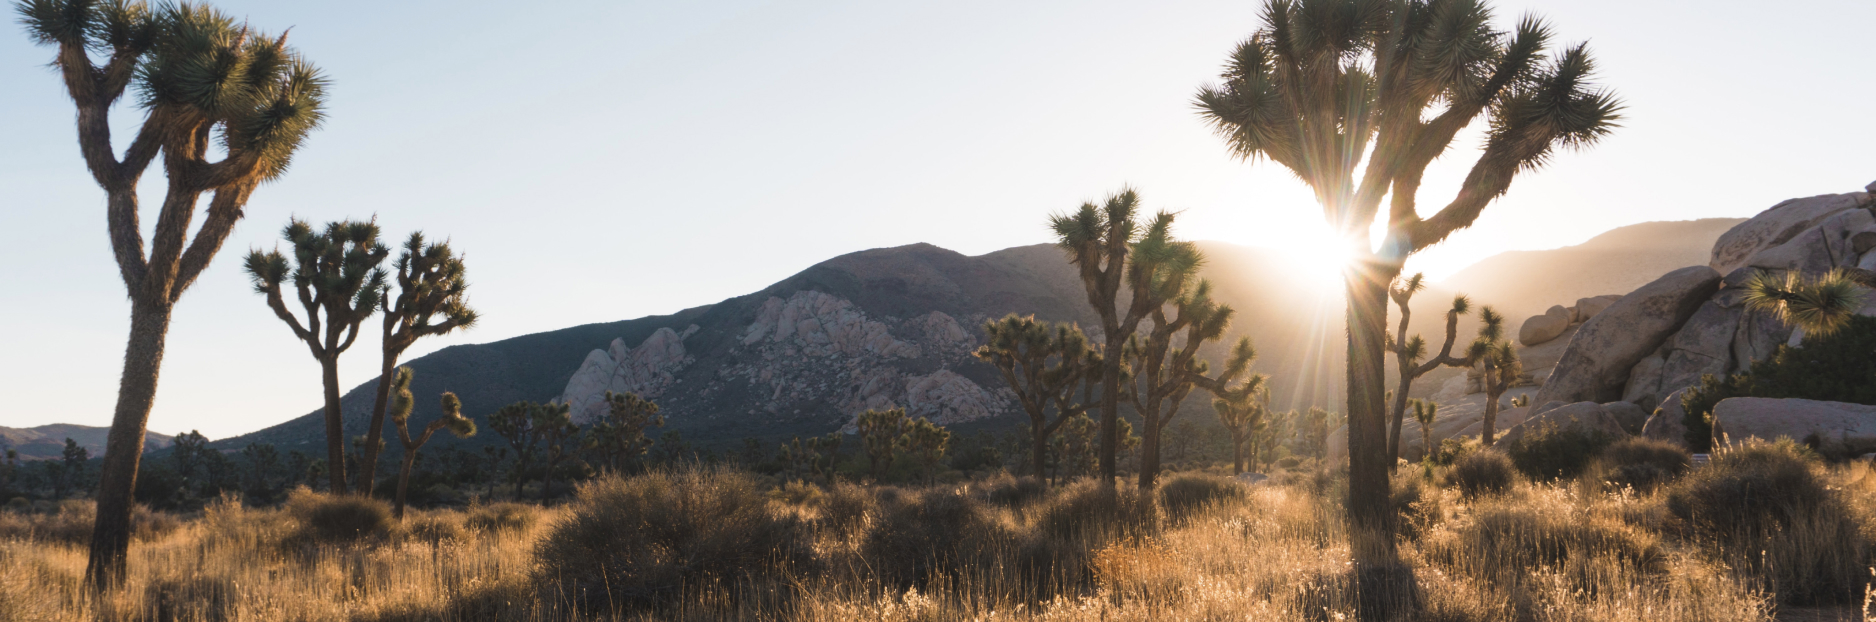 A landscape photo of Joshua Tree National Park